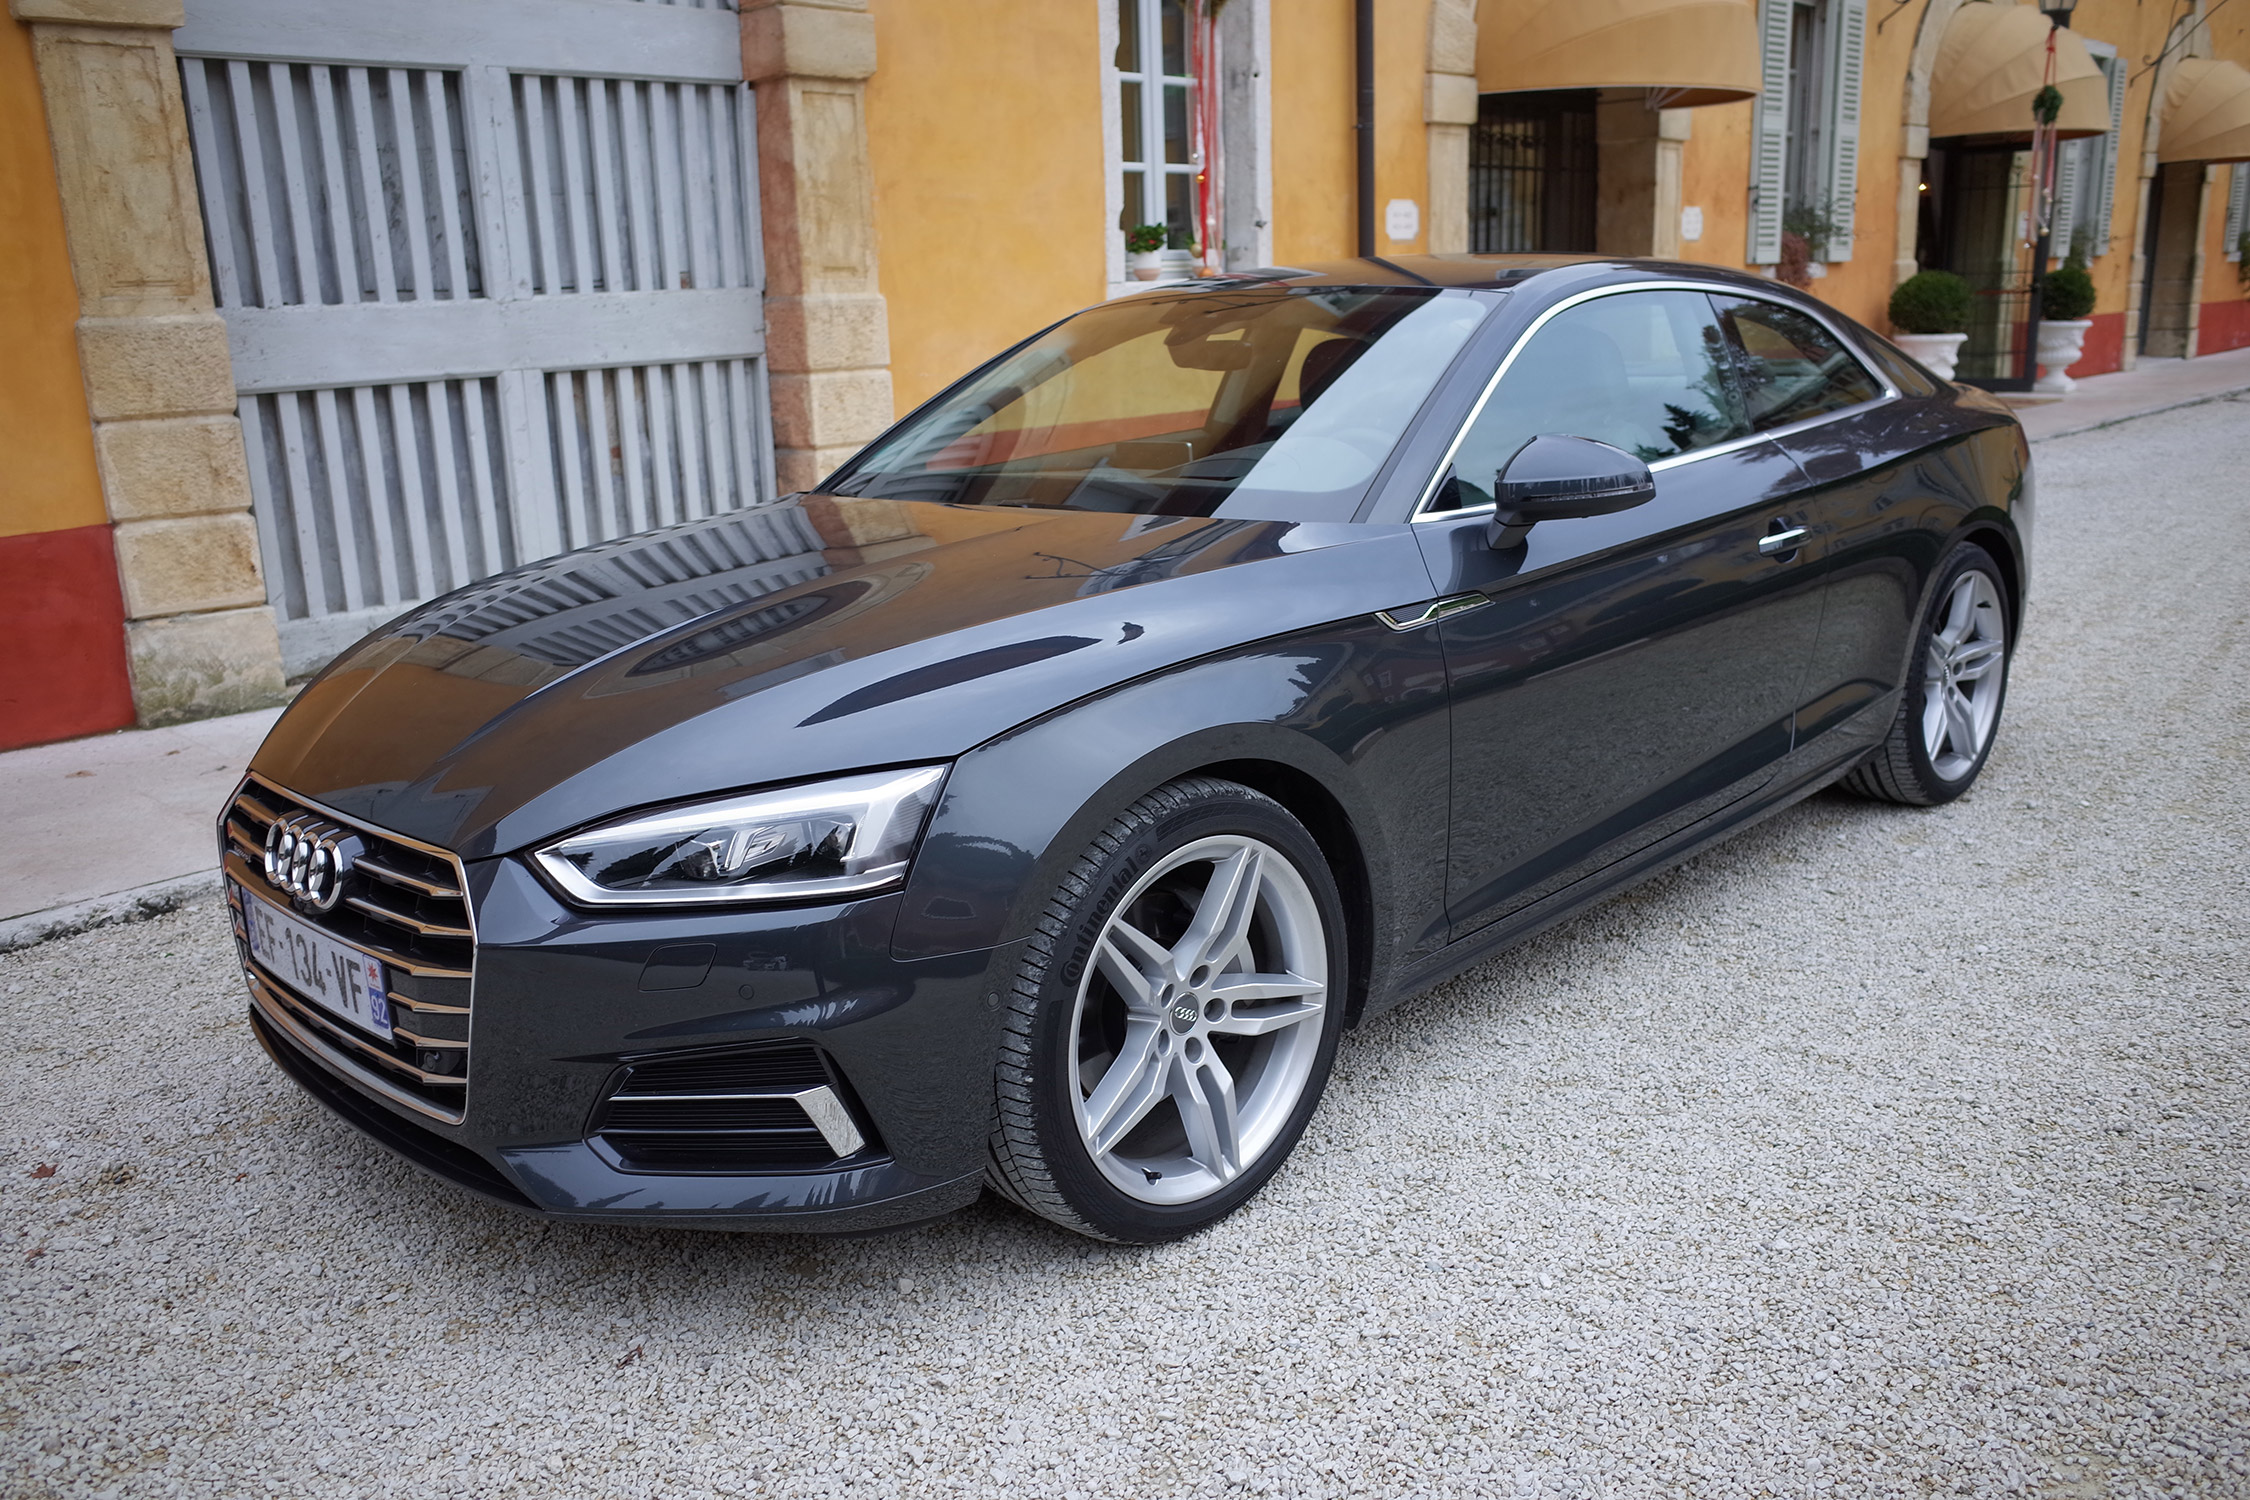 essai audi a5 coup v6 3 0 tdi 218 quattro s tronic motorlegend. Black Bedroom Furniture Sets. Home Design Ideas